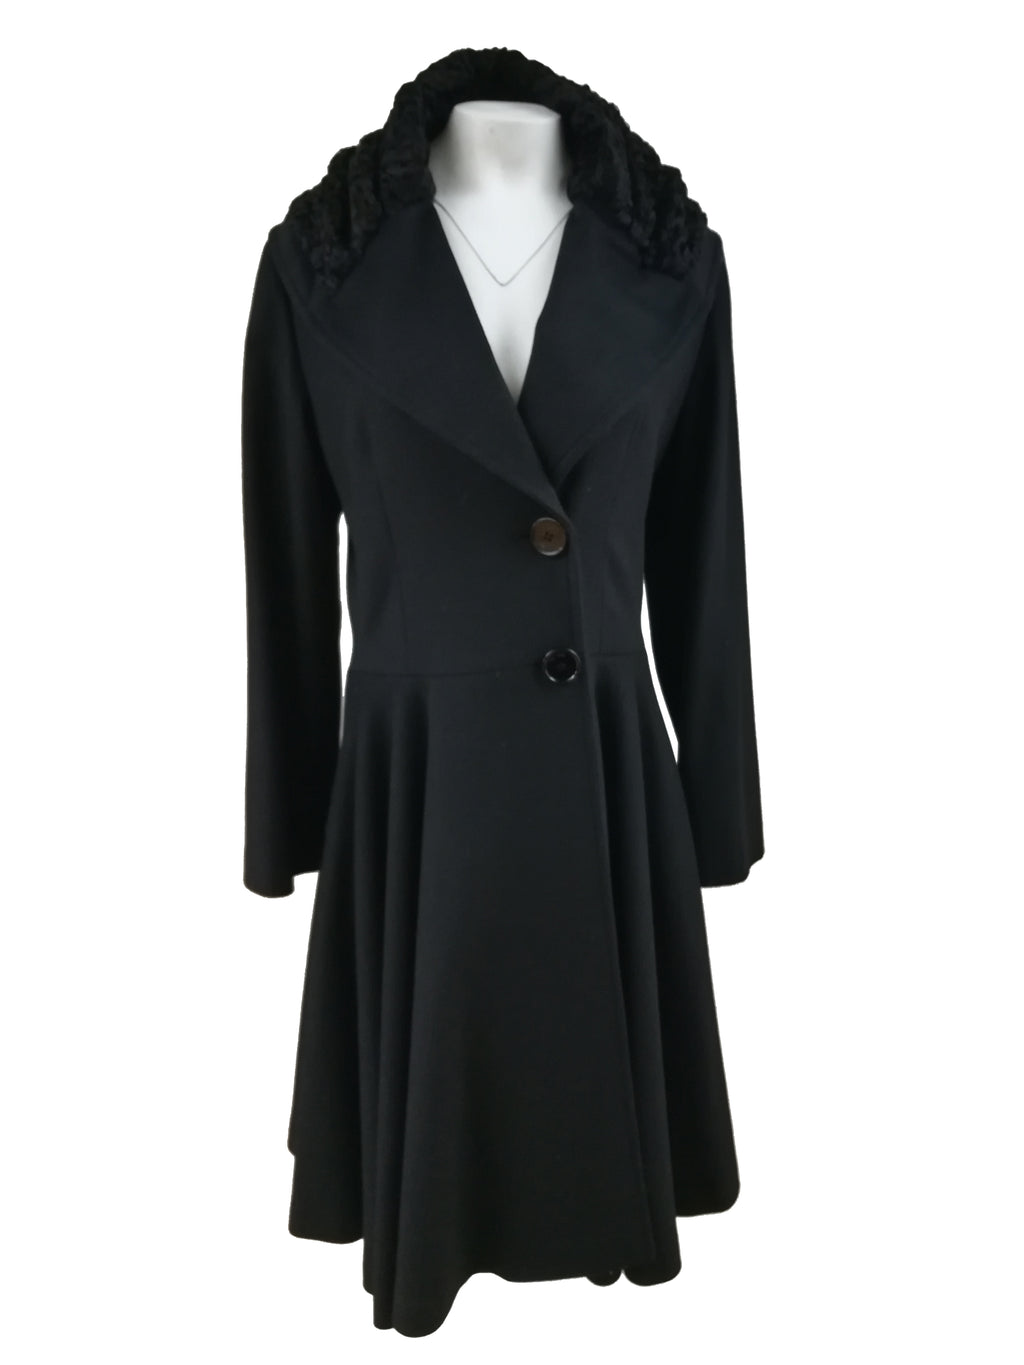 "42"" 100% Cashmere Coat with Swakara Collar - Size Medium"